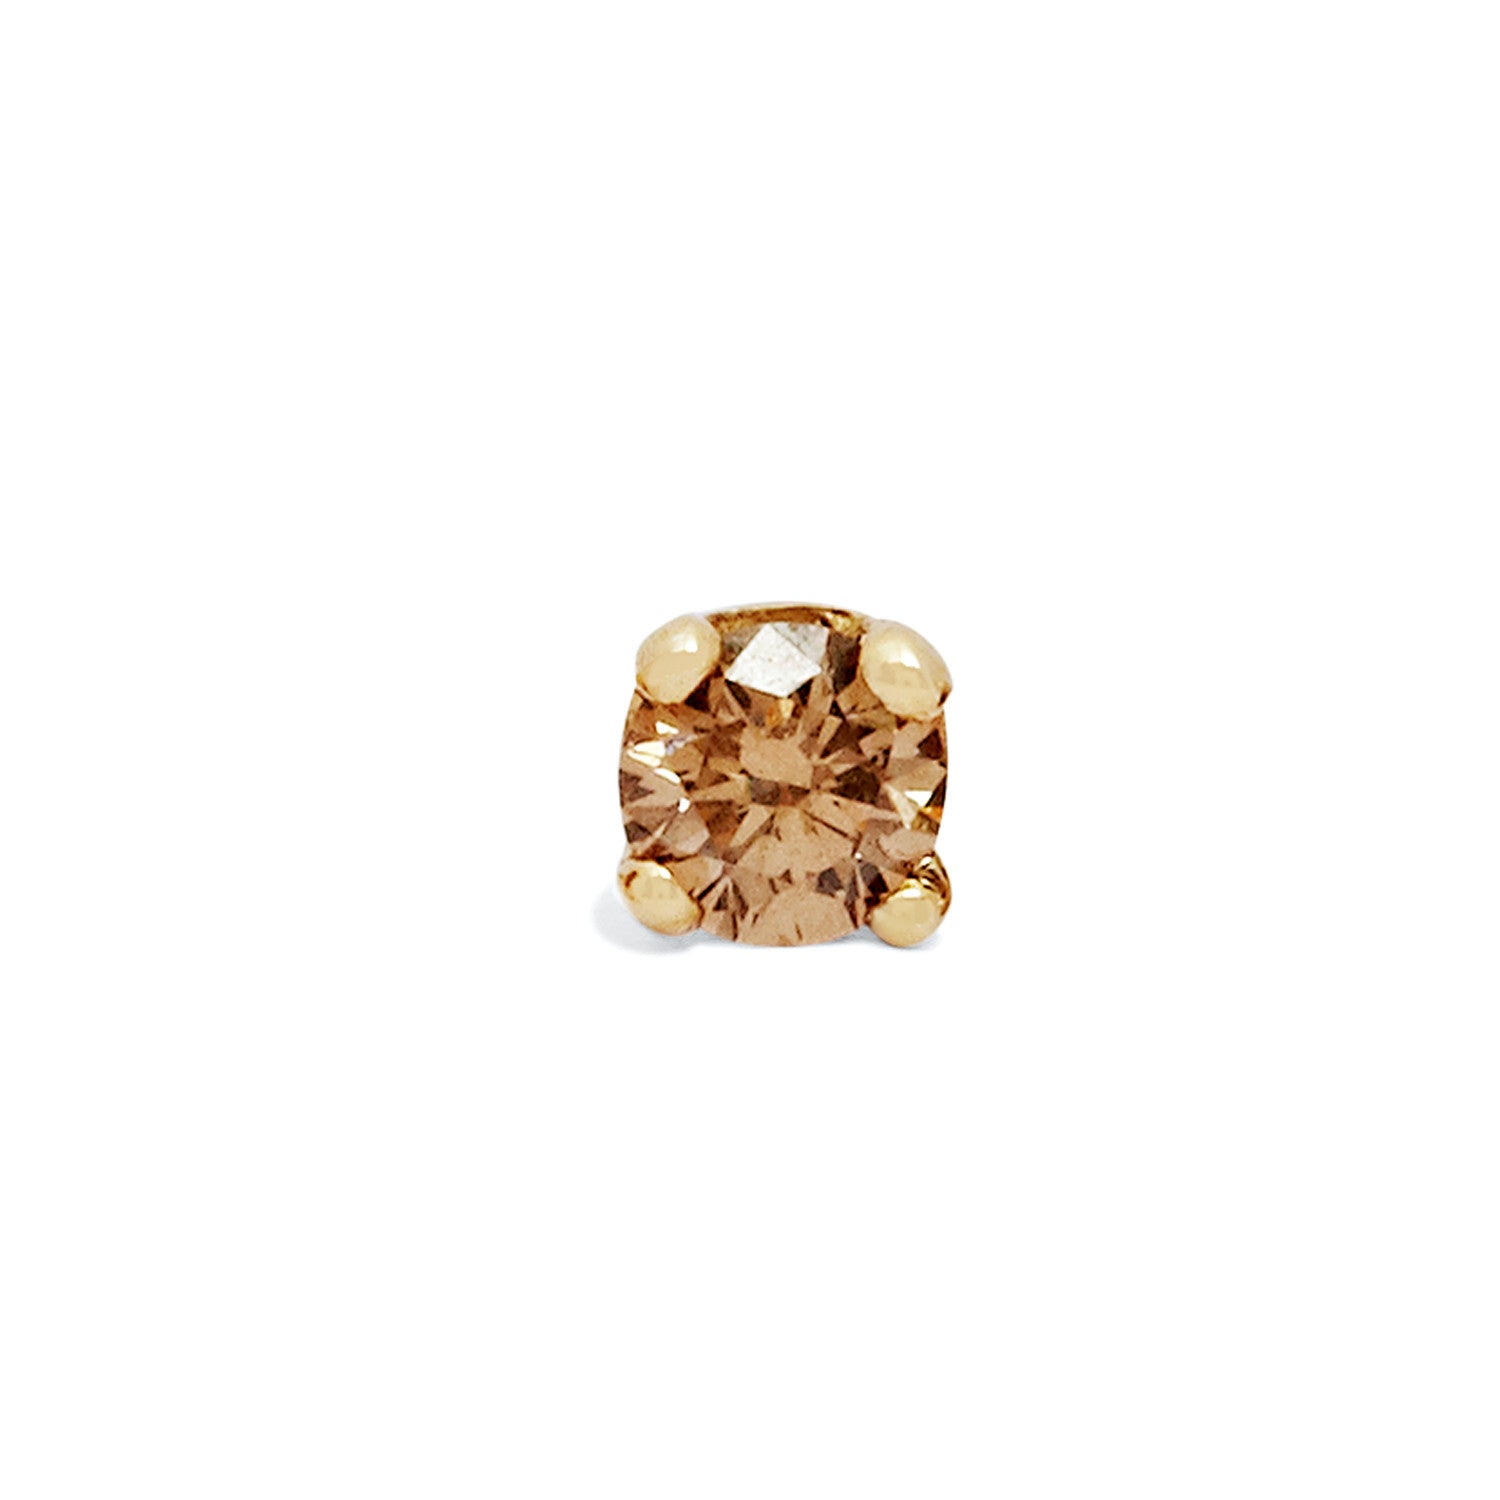 yb dark collections brown ring top gia colored fancy diamond stud lugaro certified diamonds